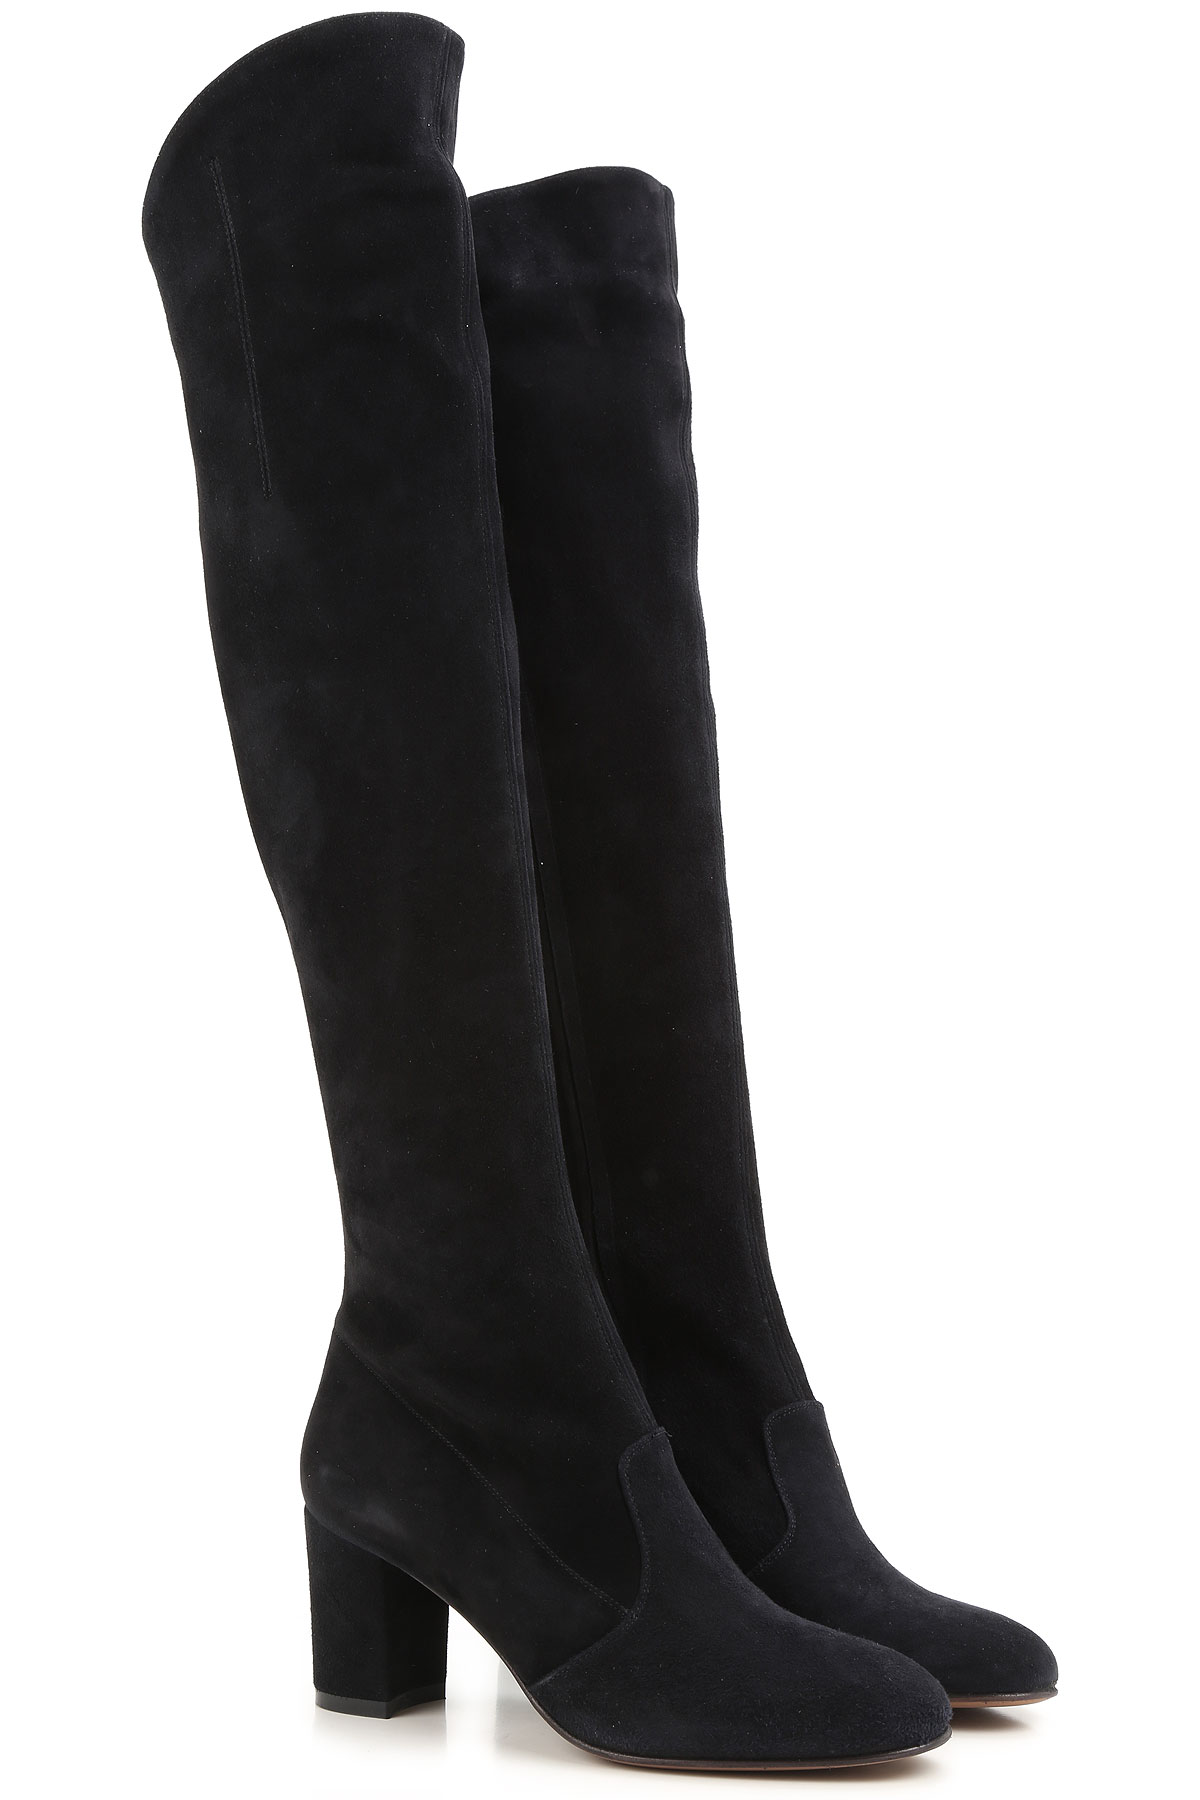 Image of Lautre Chose Boots for Women, Booties On Sale, Black, Suede leather, 2017, 10 7